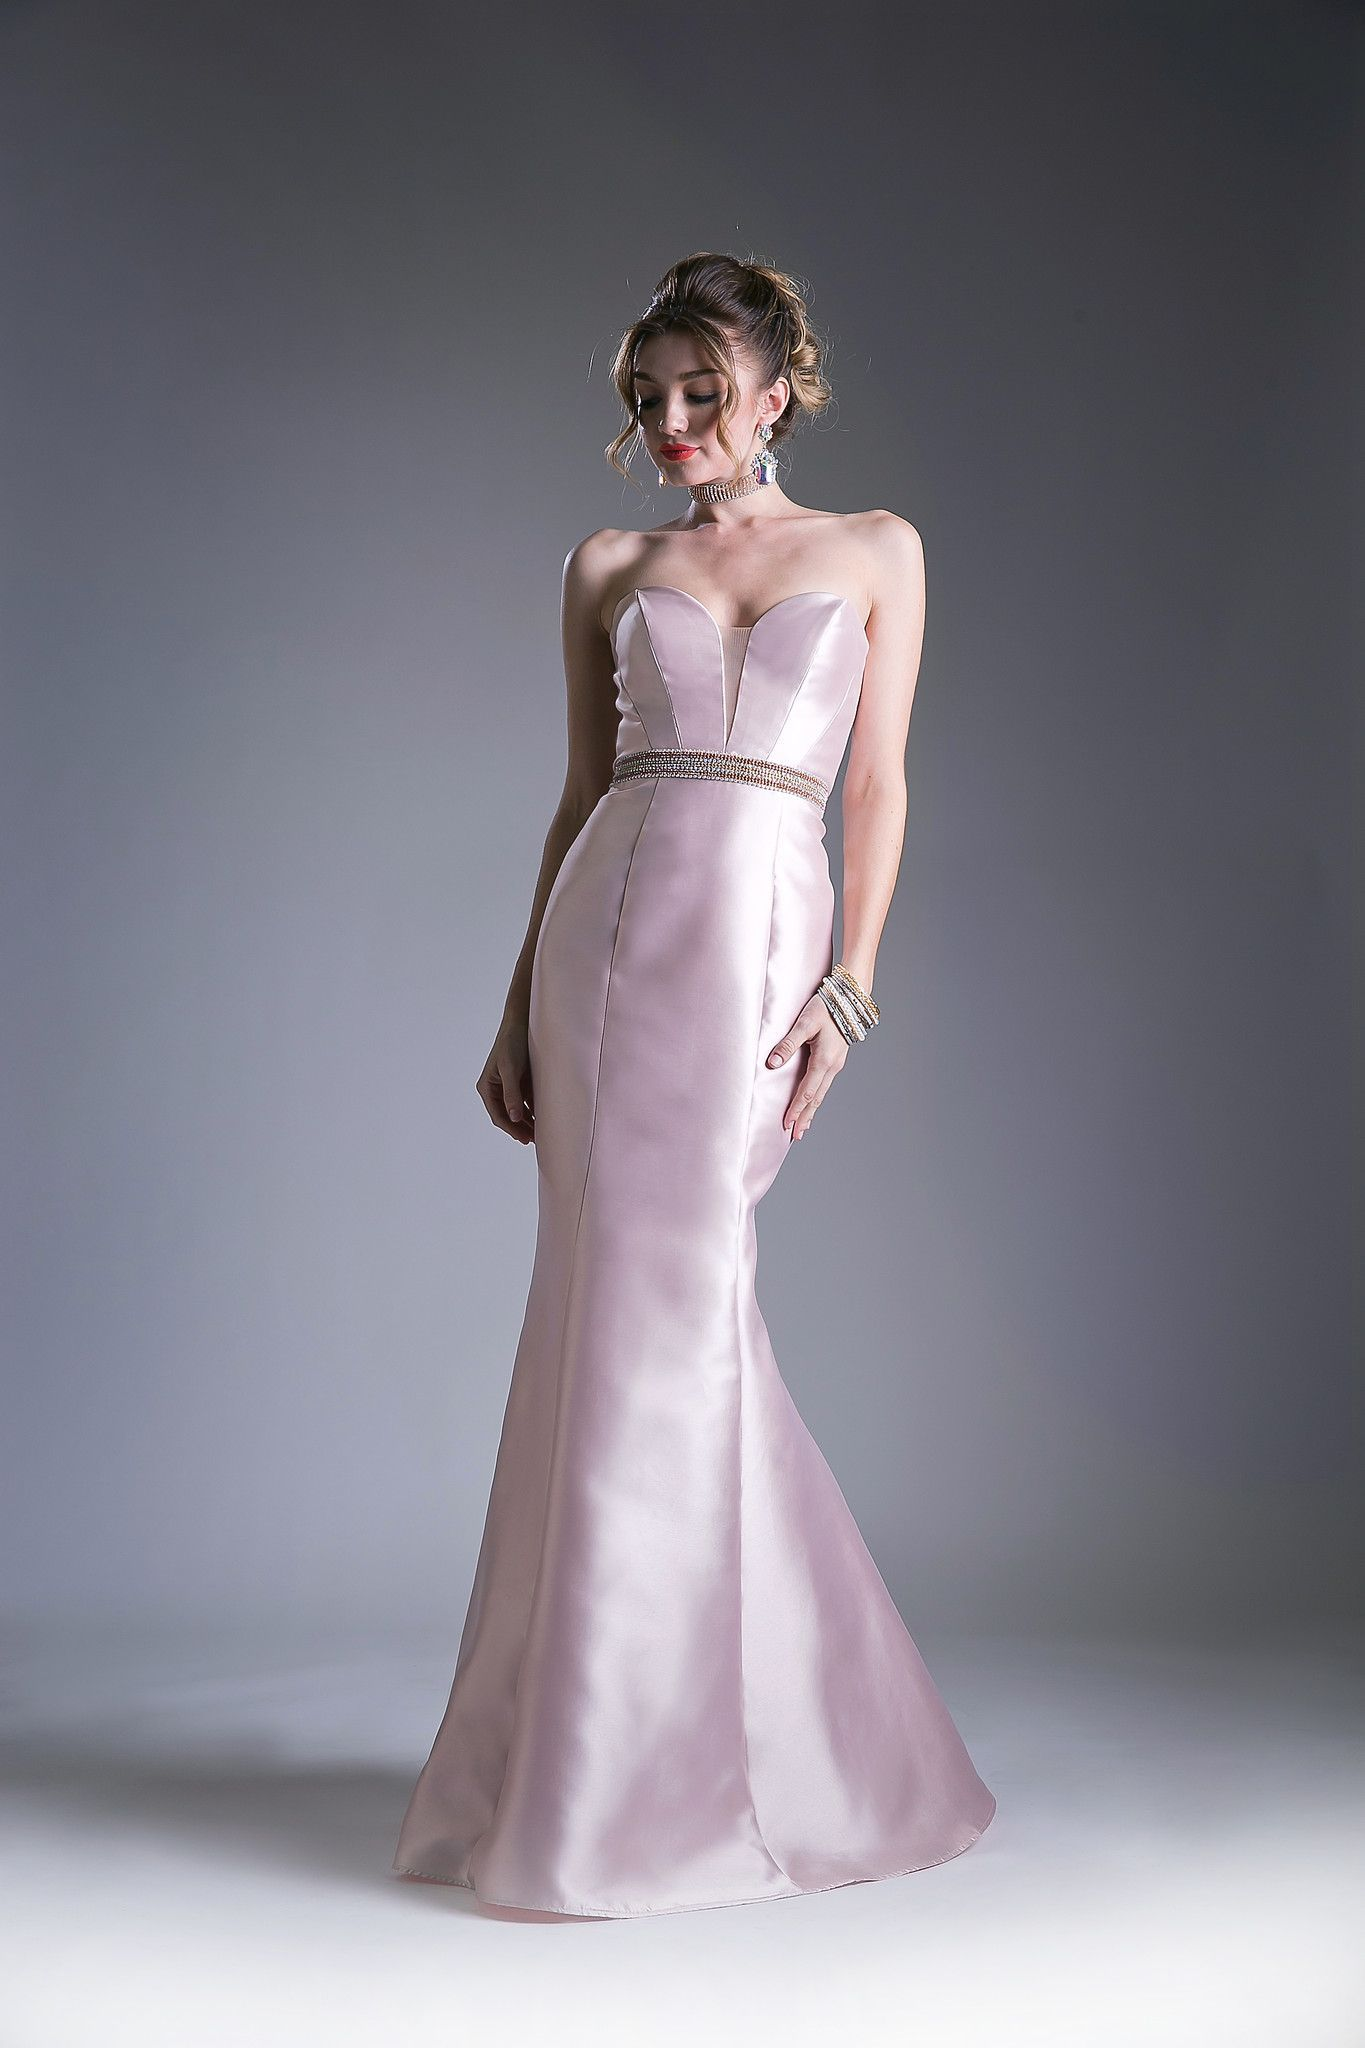 Thedressoutlet sexy long formal dress evening party gown prom